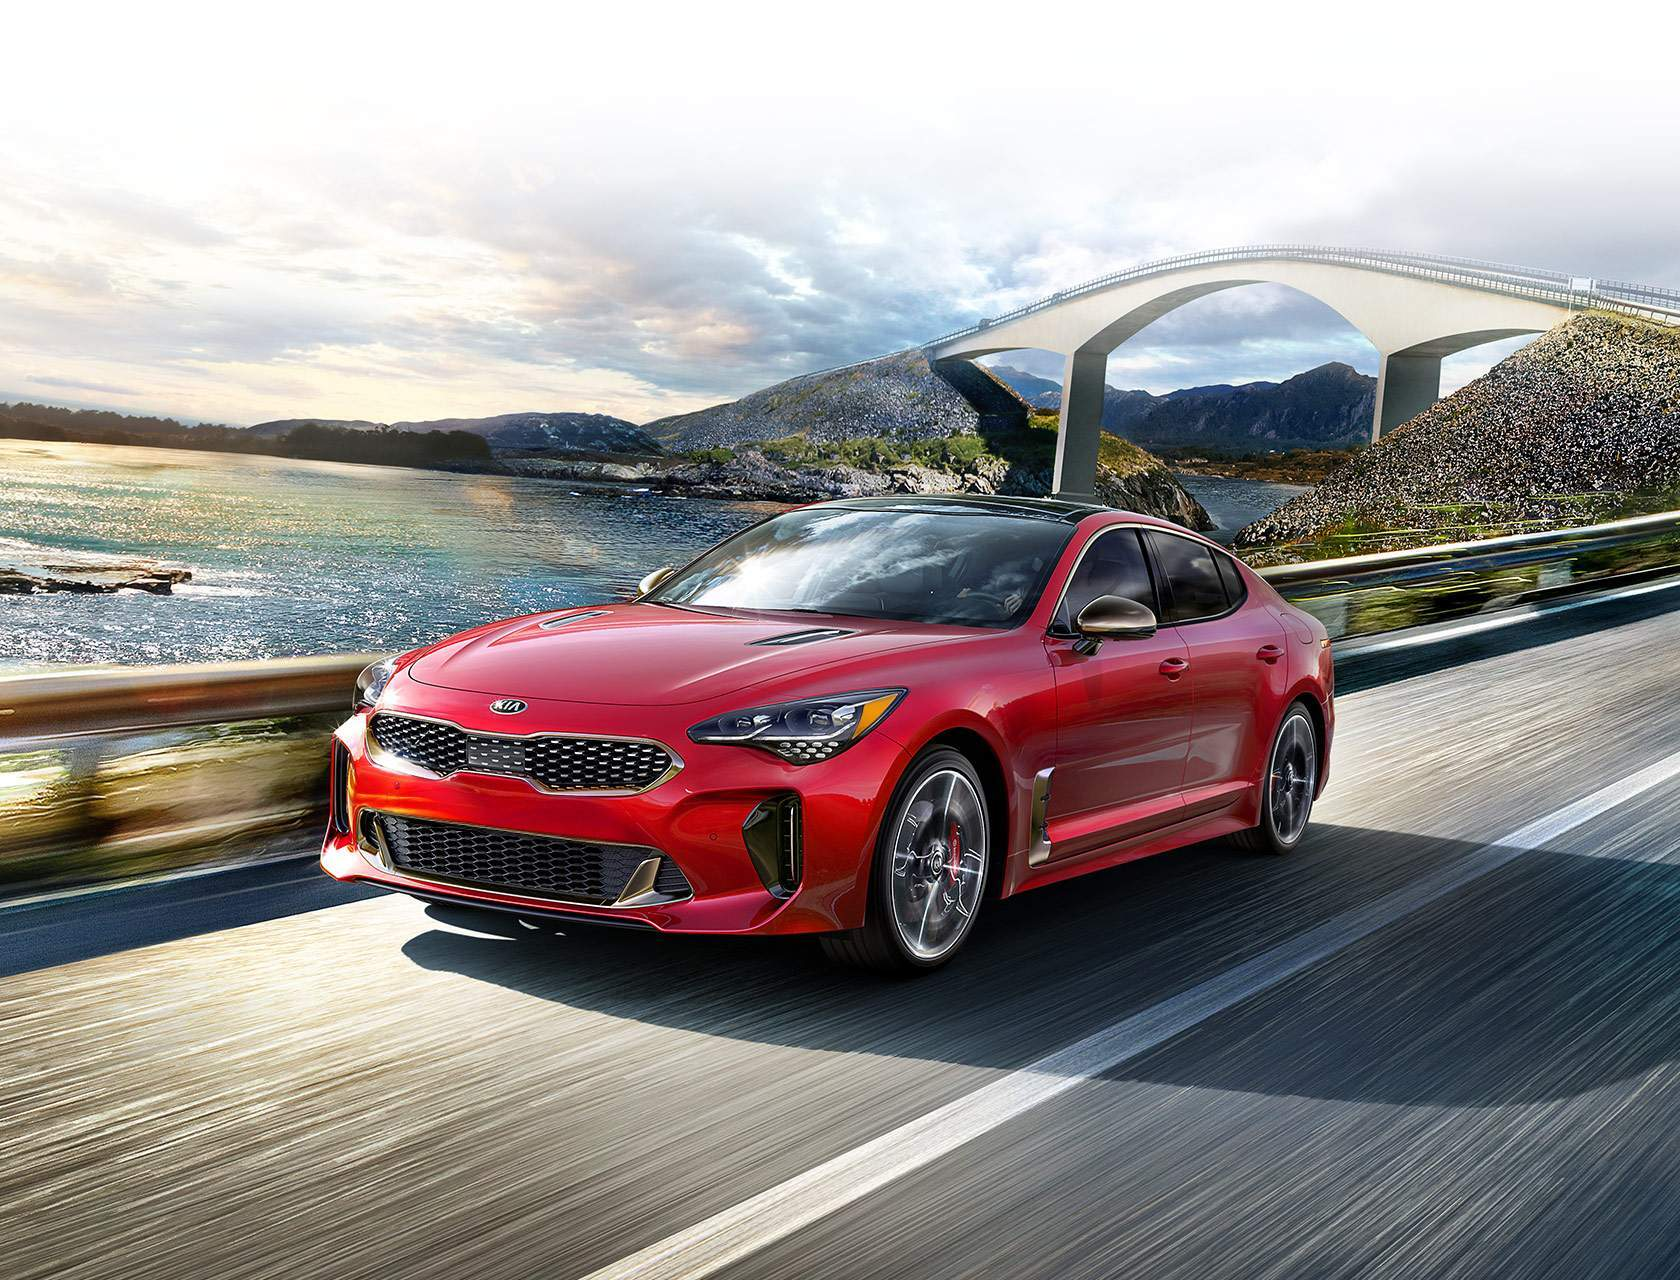 2018 Kia Stinger in Battle Creek, MI